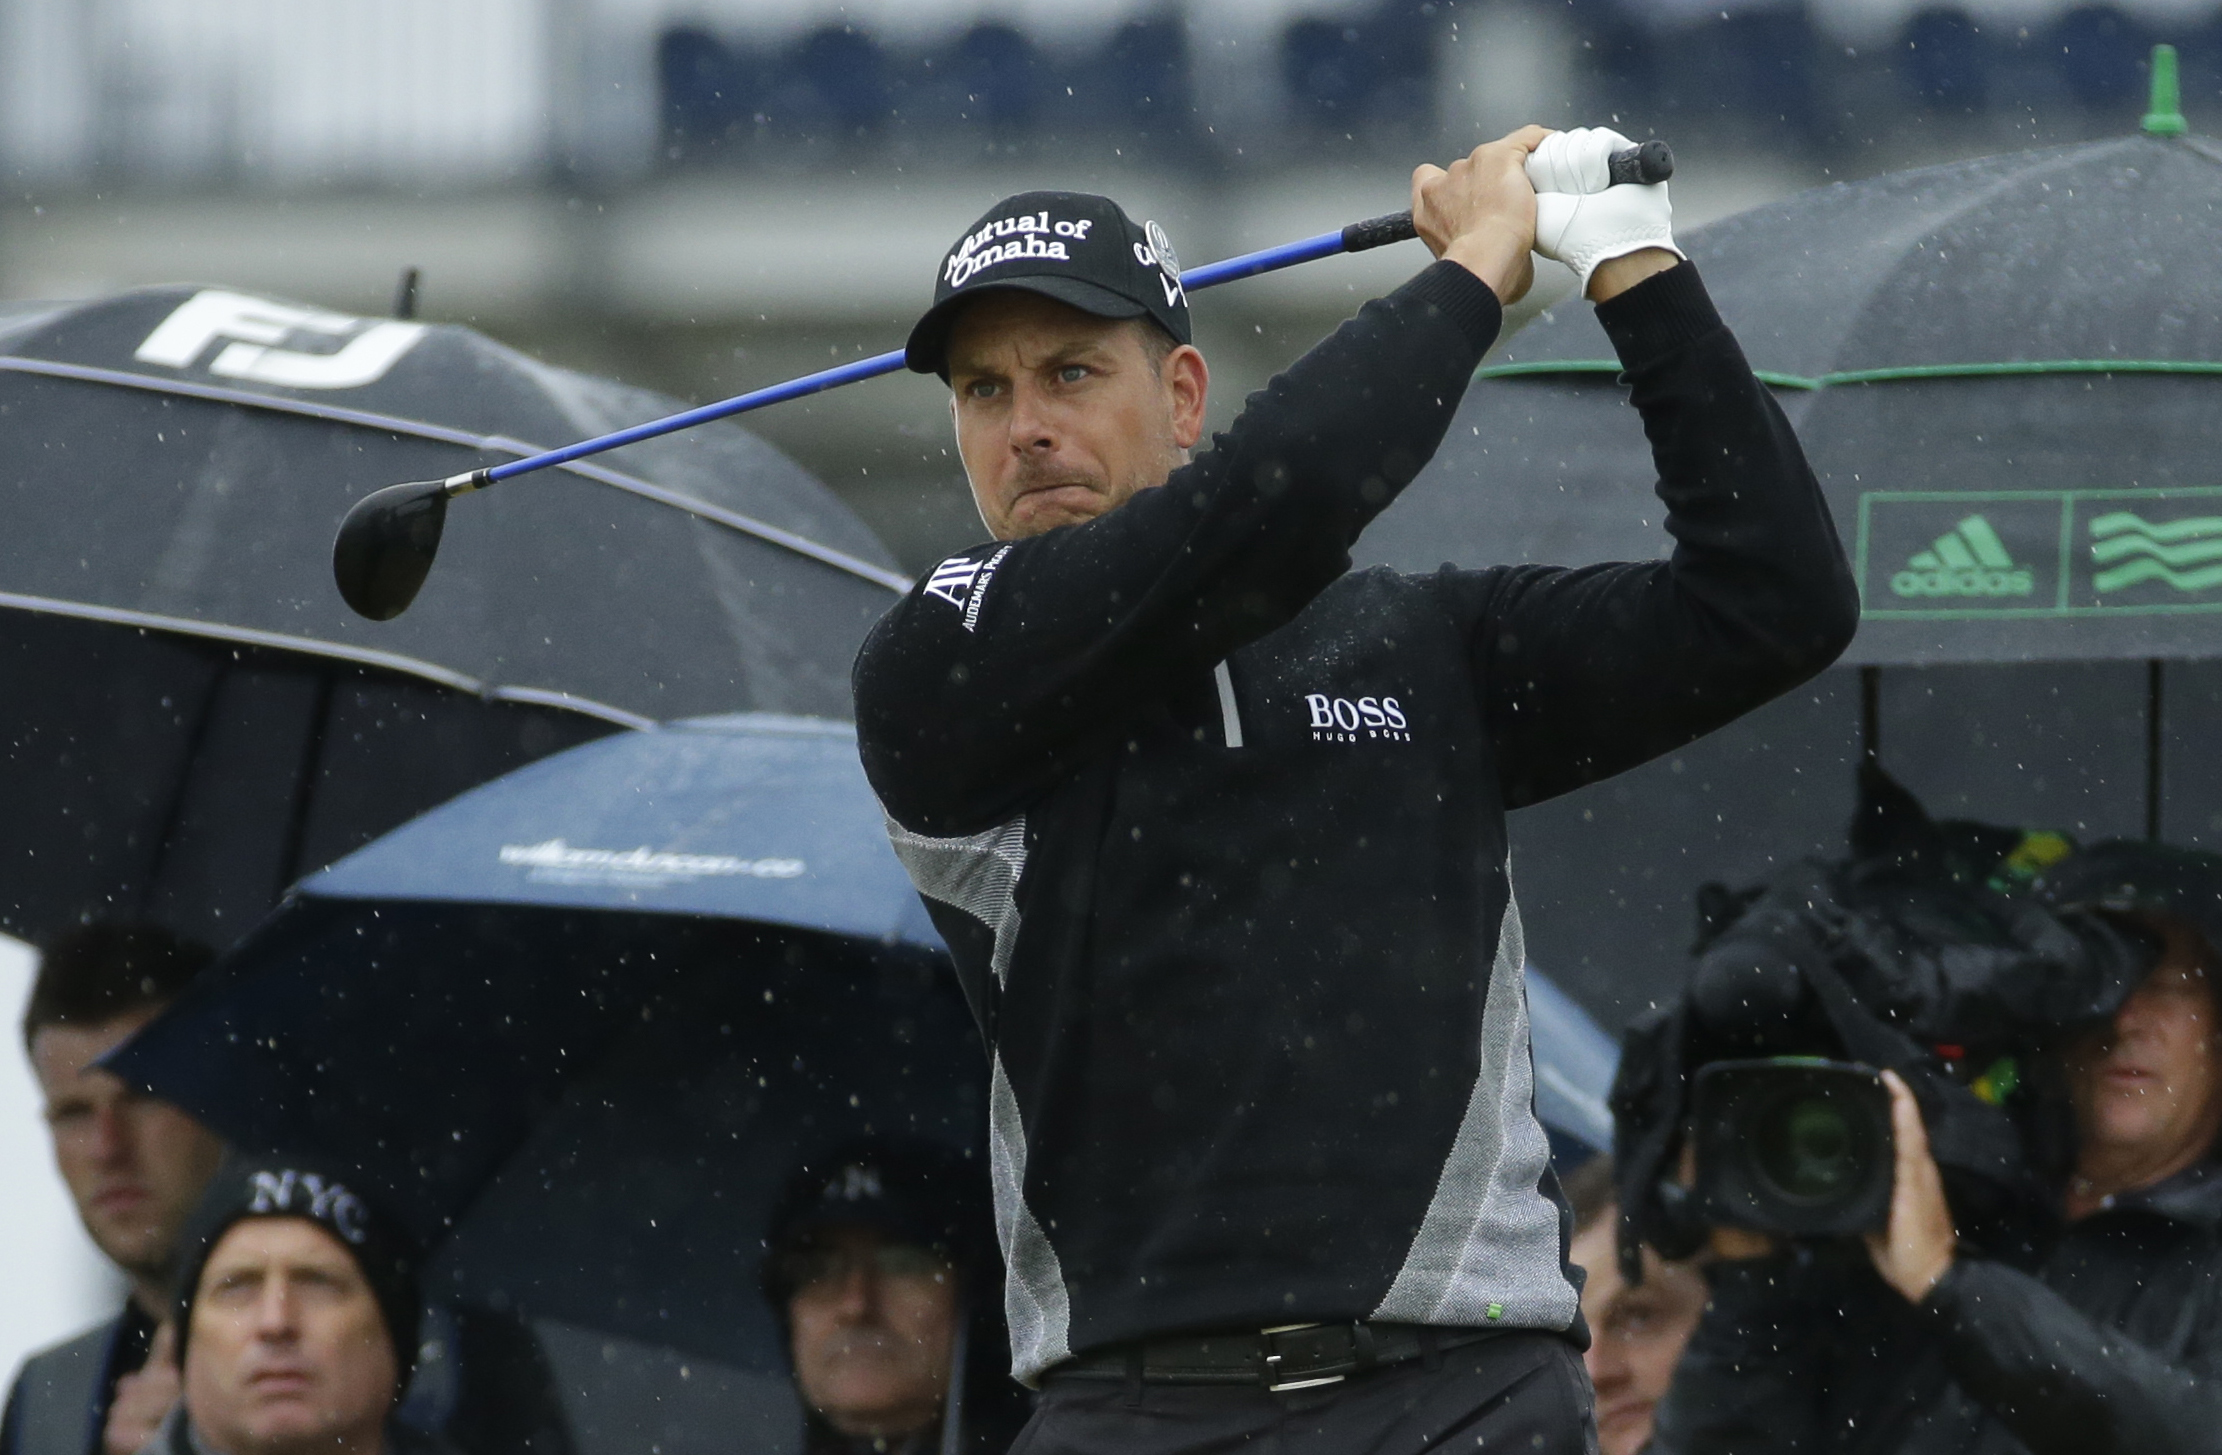 Henrik Stenson of Sweden plays his tee shot on the 9th tee during the second round of the British Open Golf Championships at the Royal Troon Golf Club in Troon, Scotland, Friday, July 15, 2016. (AP Photo/Matt Dunham)